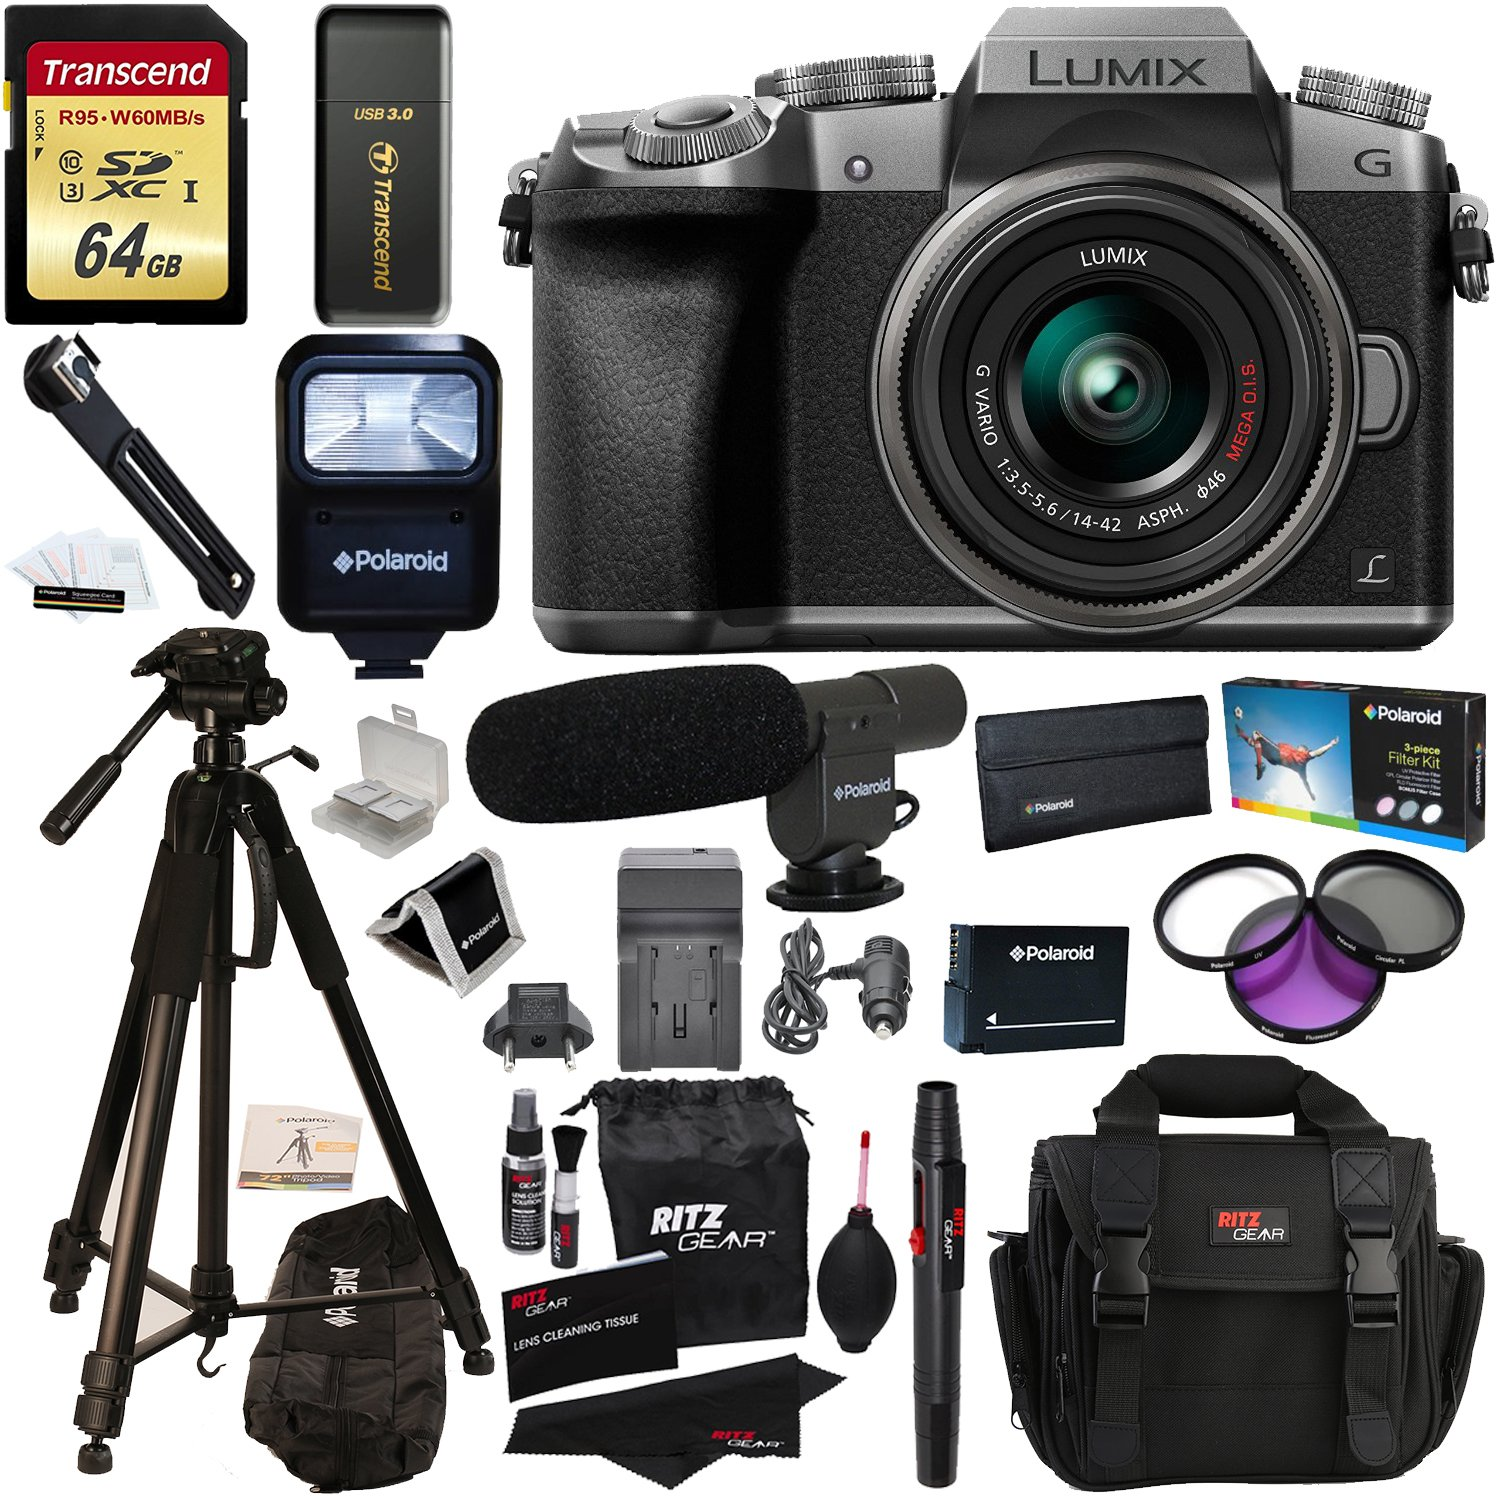 "Panasonic DMC-G7KS Digital Single Lens Mirrorless Camera 14-42 mm Lens Kit, 4K + Accessory Bundle + Transcend 64 GB + Polaroid 72"" Tripod + Microphone + Polaroid Flash + Filter Set + Battery + More"